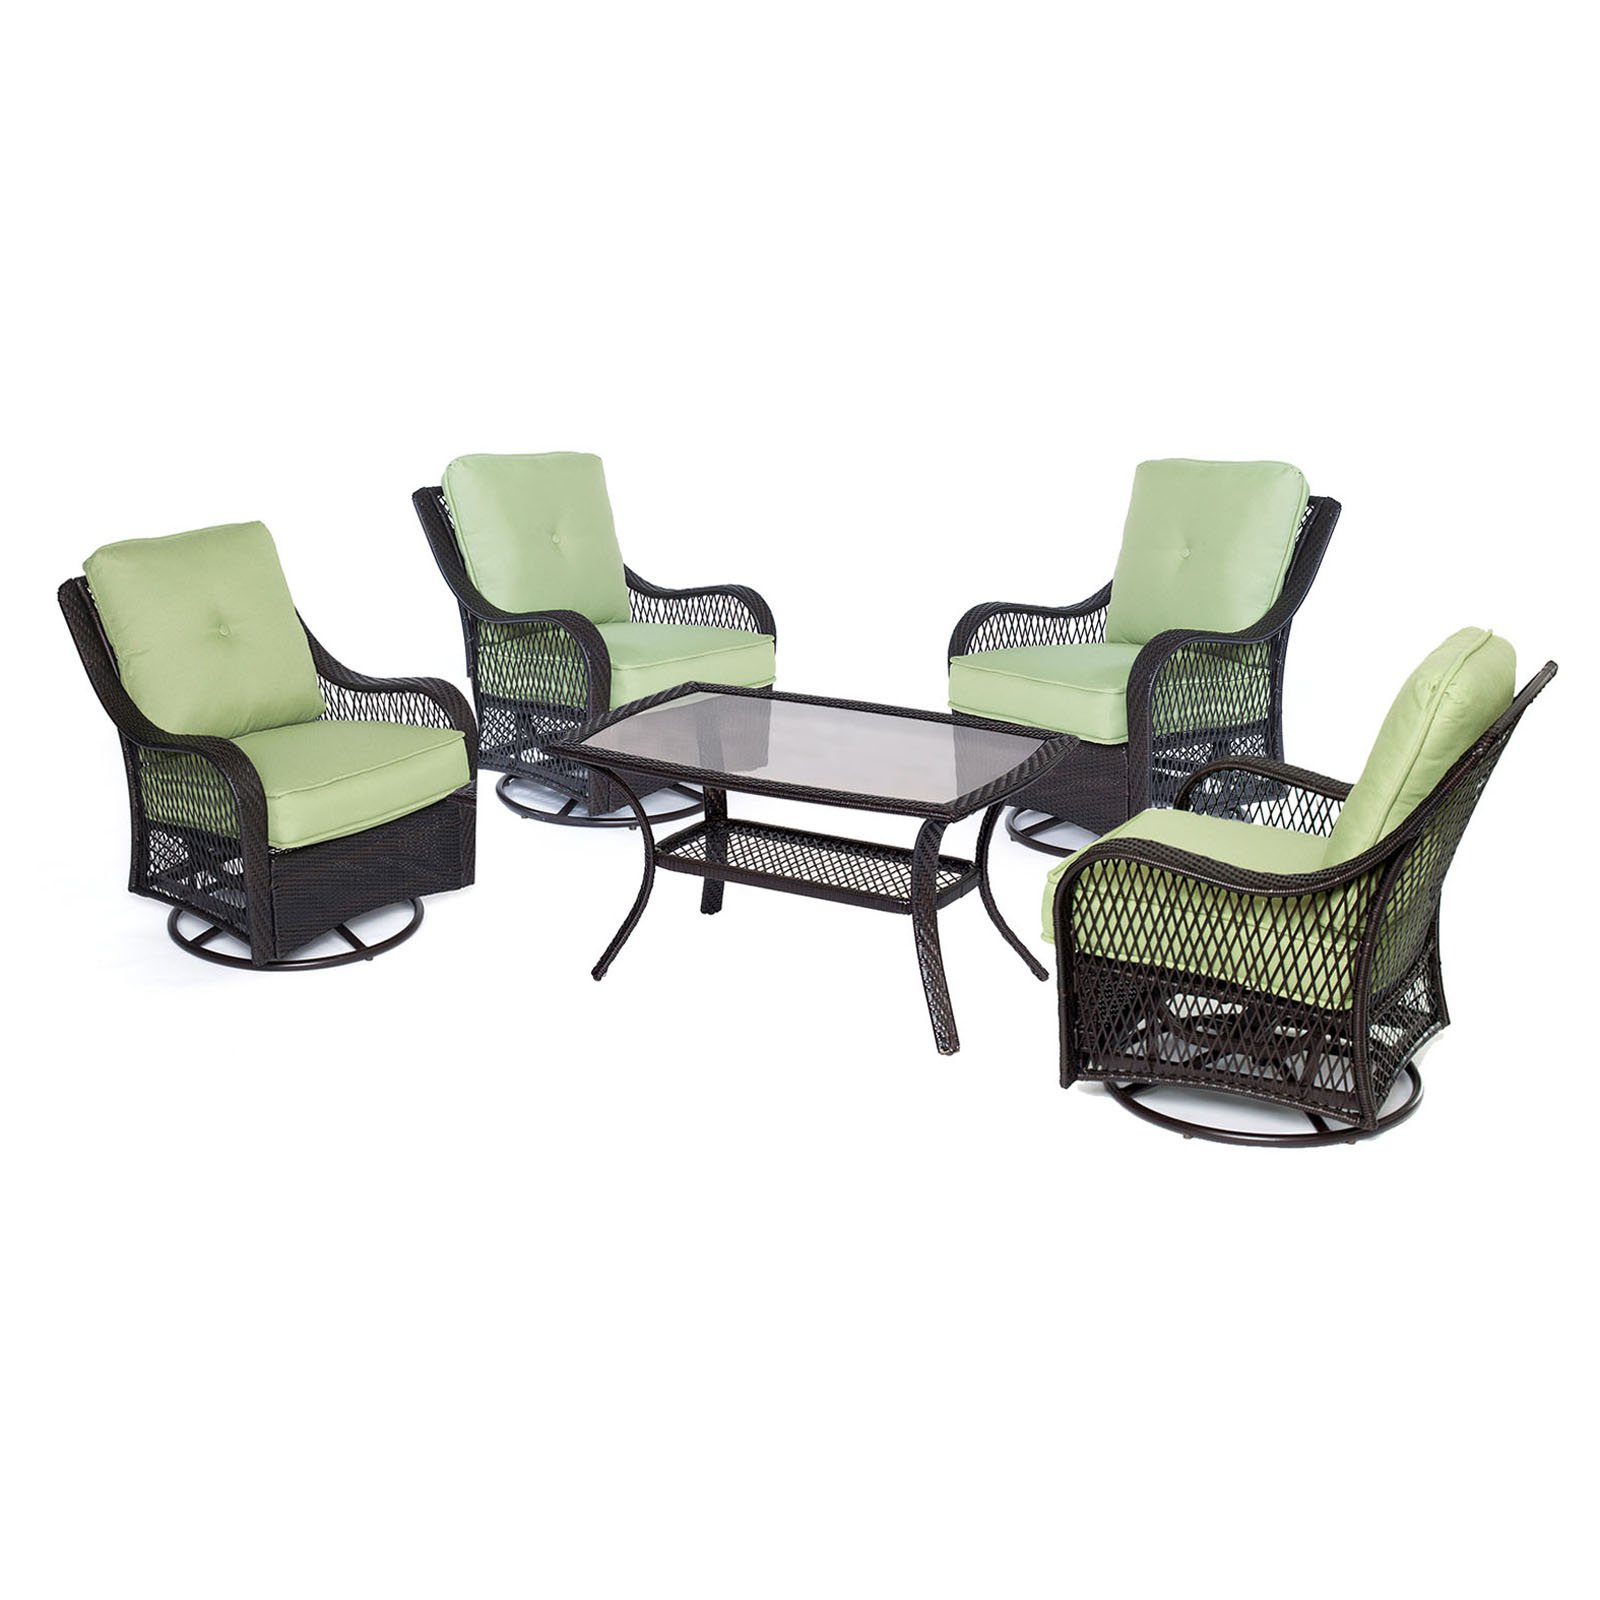 Hanover Outdoor Orleans 5-Piece Woven Patio Chat Set